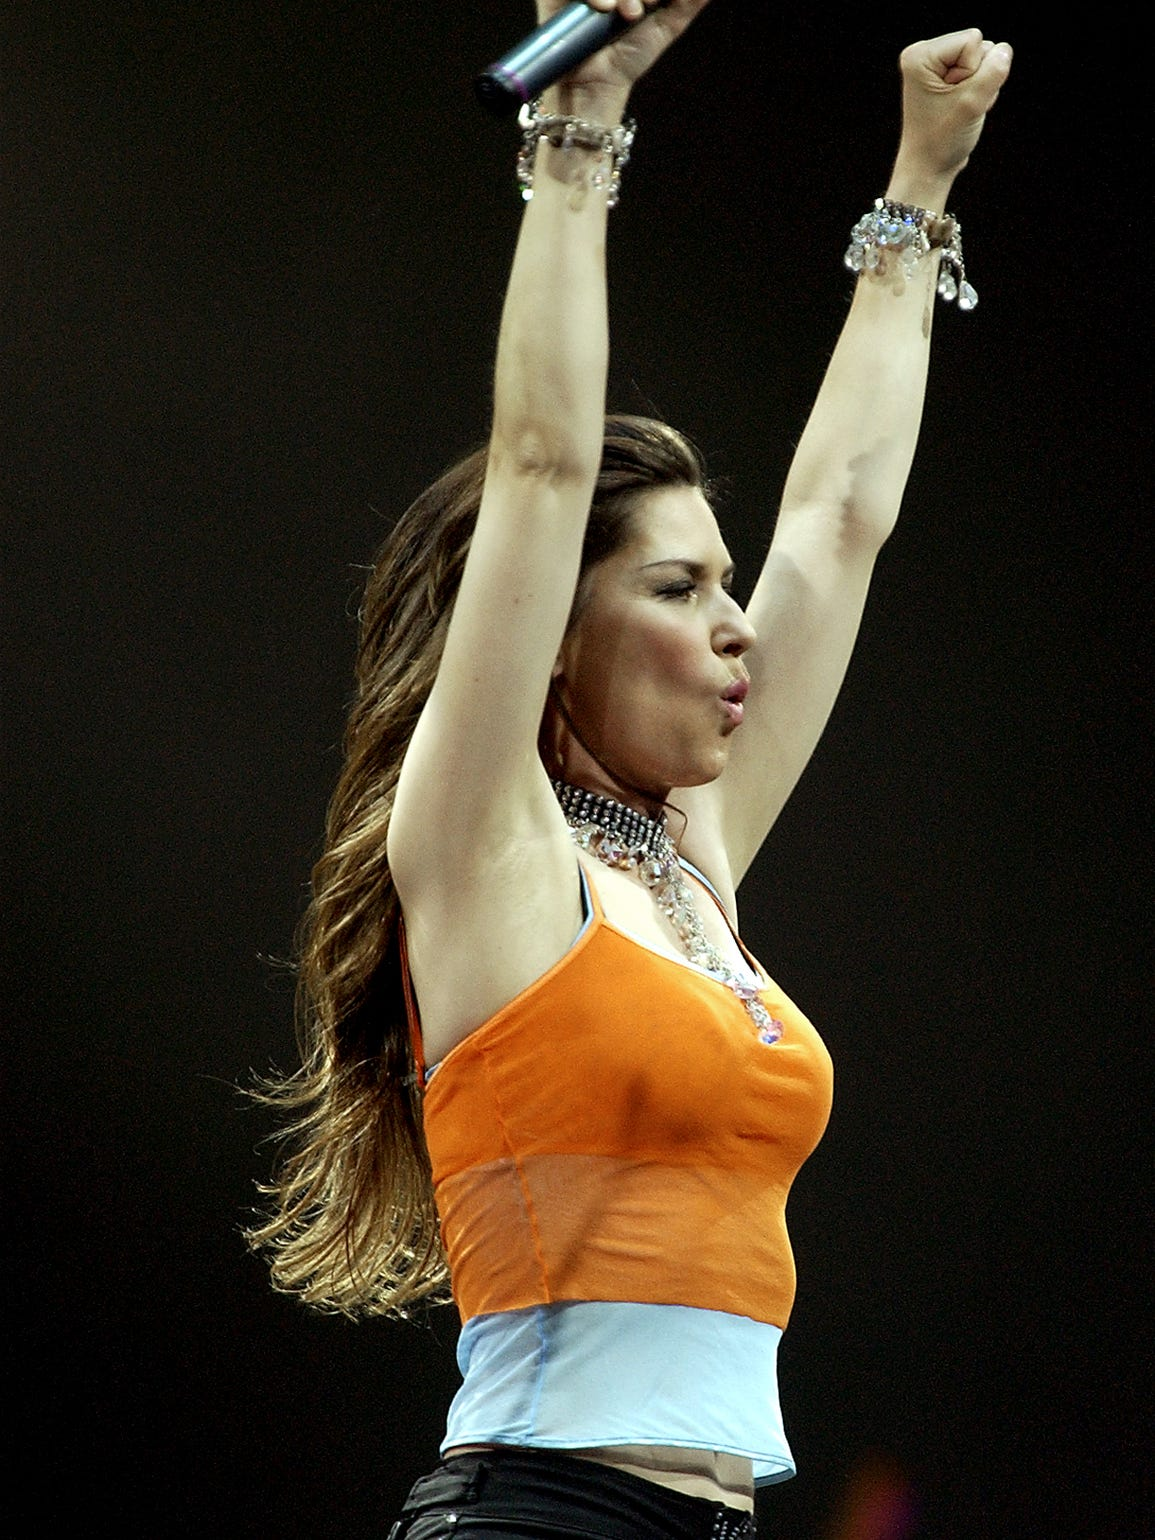 Shania Twain was the first act to perform in the round